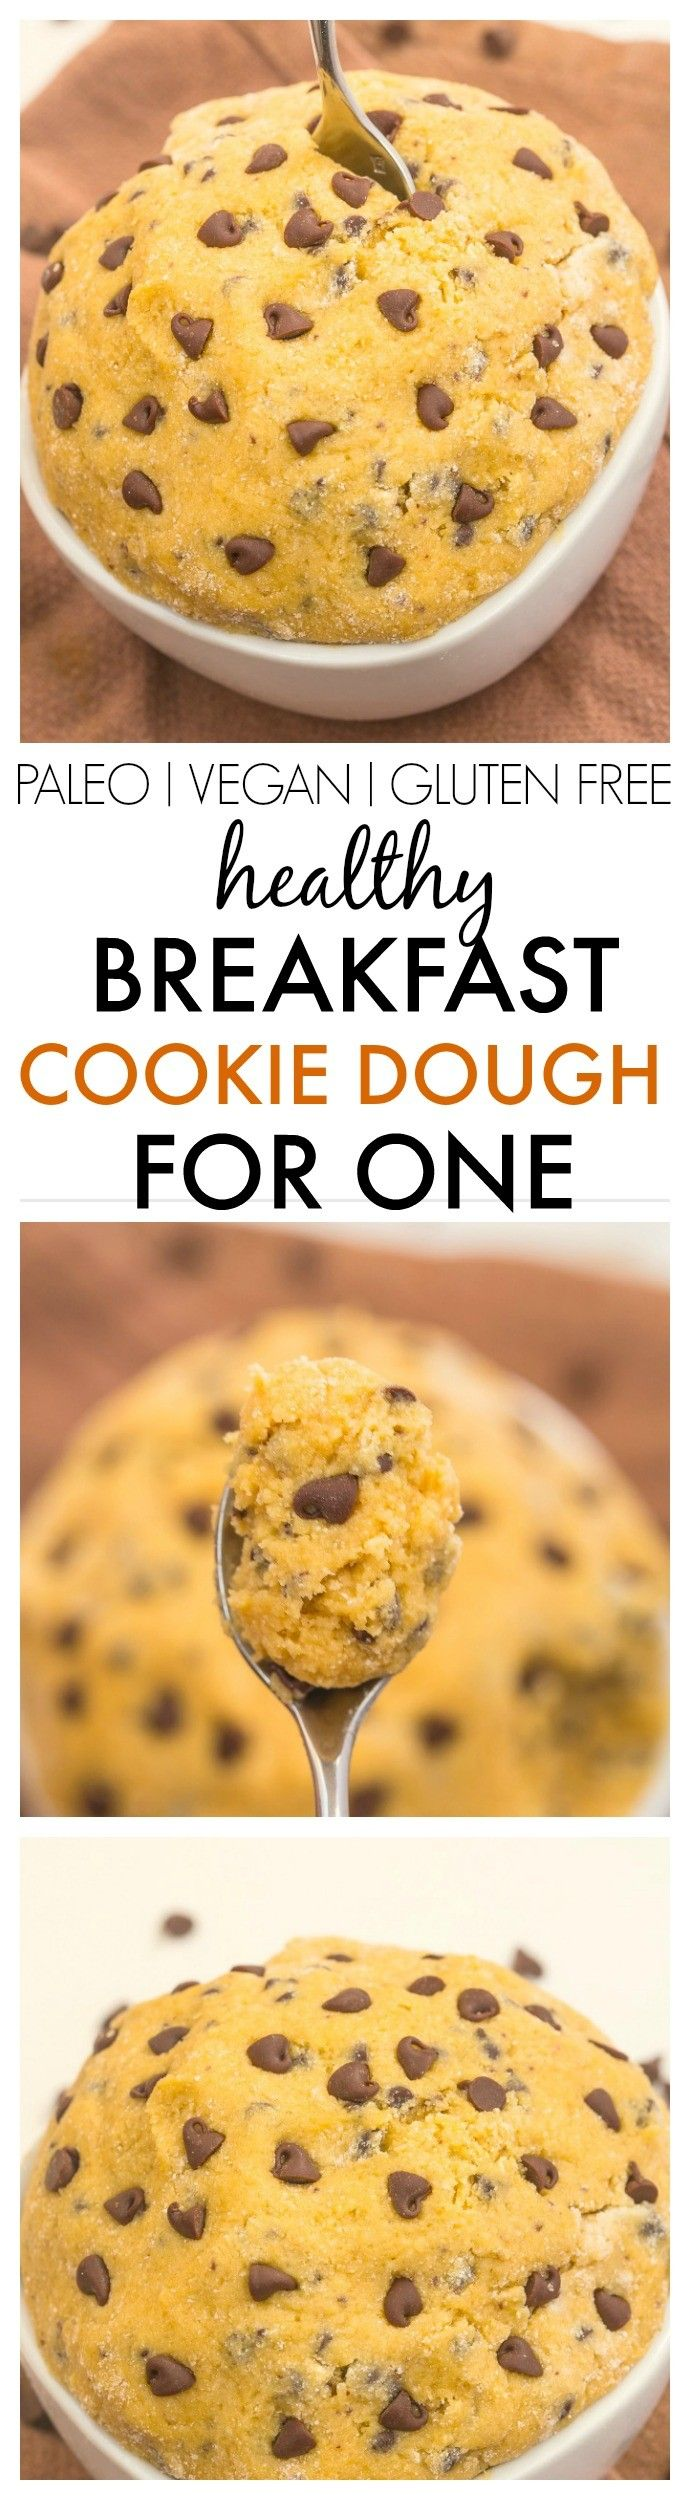 Healthy Breakfast Cookie Dough for ONE- The taste and texture of real cookie dough but with NO butter, white flour, sugar oil oil- It's packed with protein and ready in five minutes! {vegan, gluten free, paleo, refined sugar free recipe}- thebigmansworld.com #breakfast #healthy